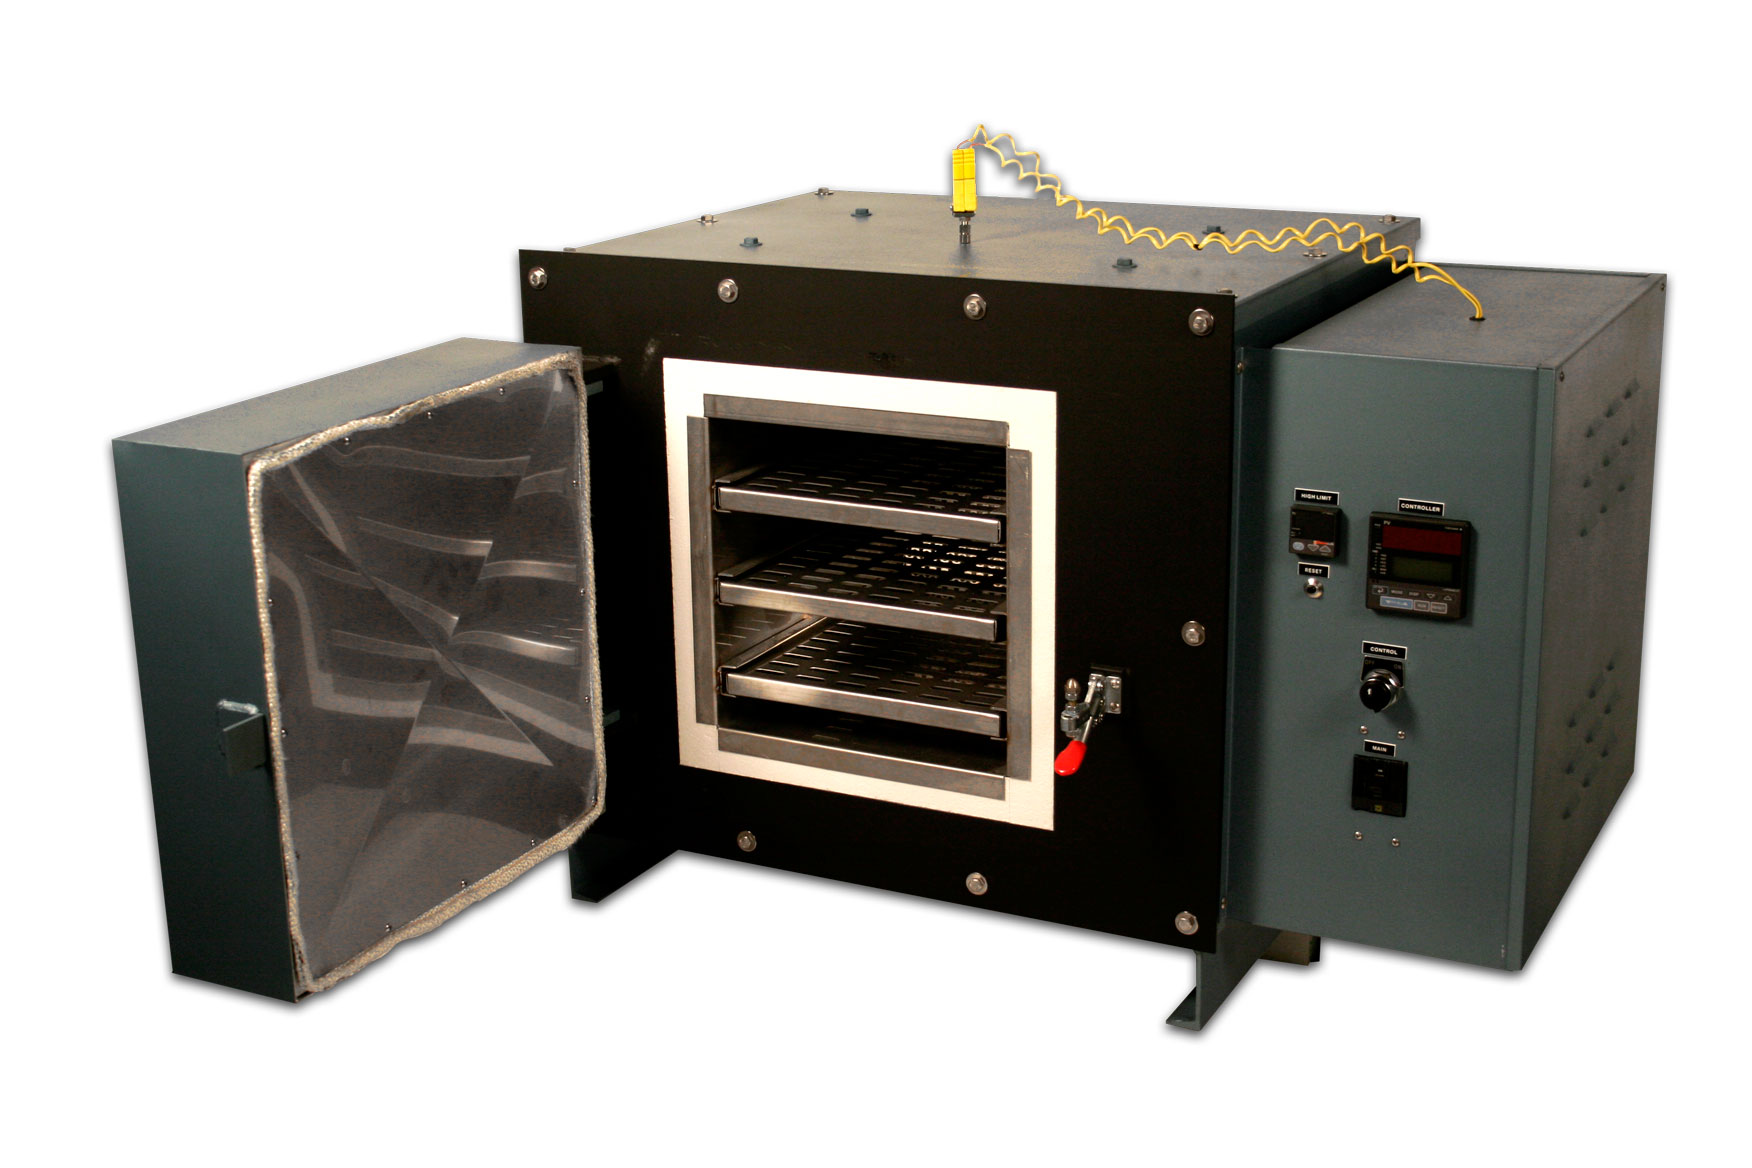 thermcraft-tabletop-oven.jpg